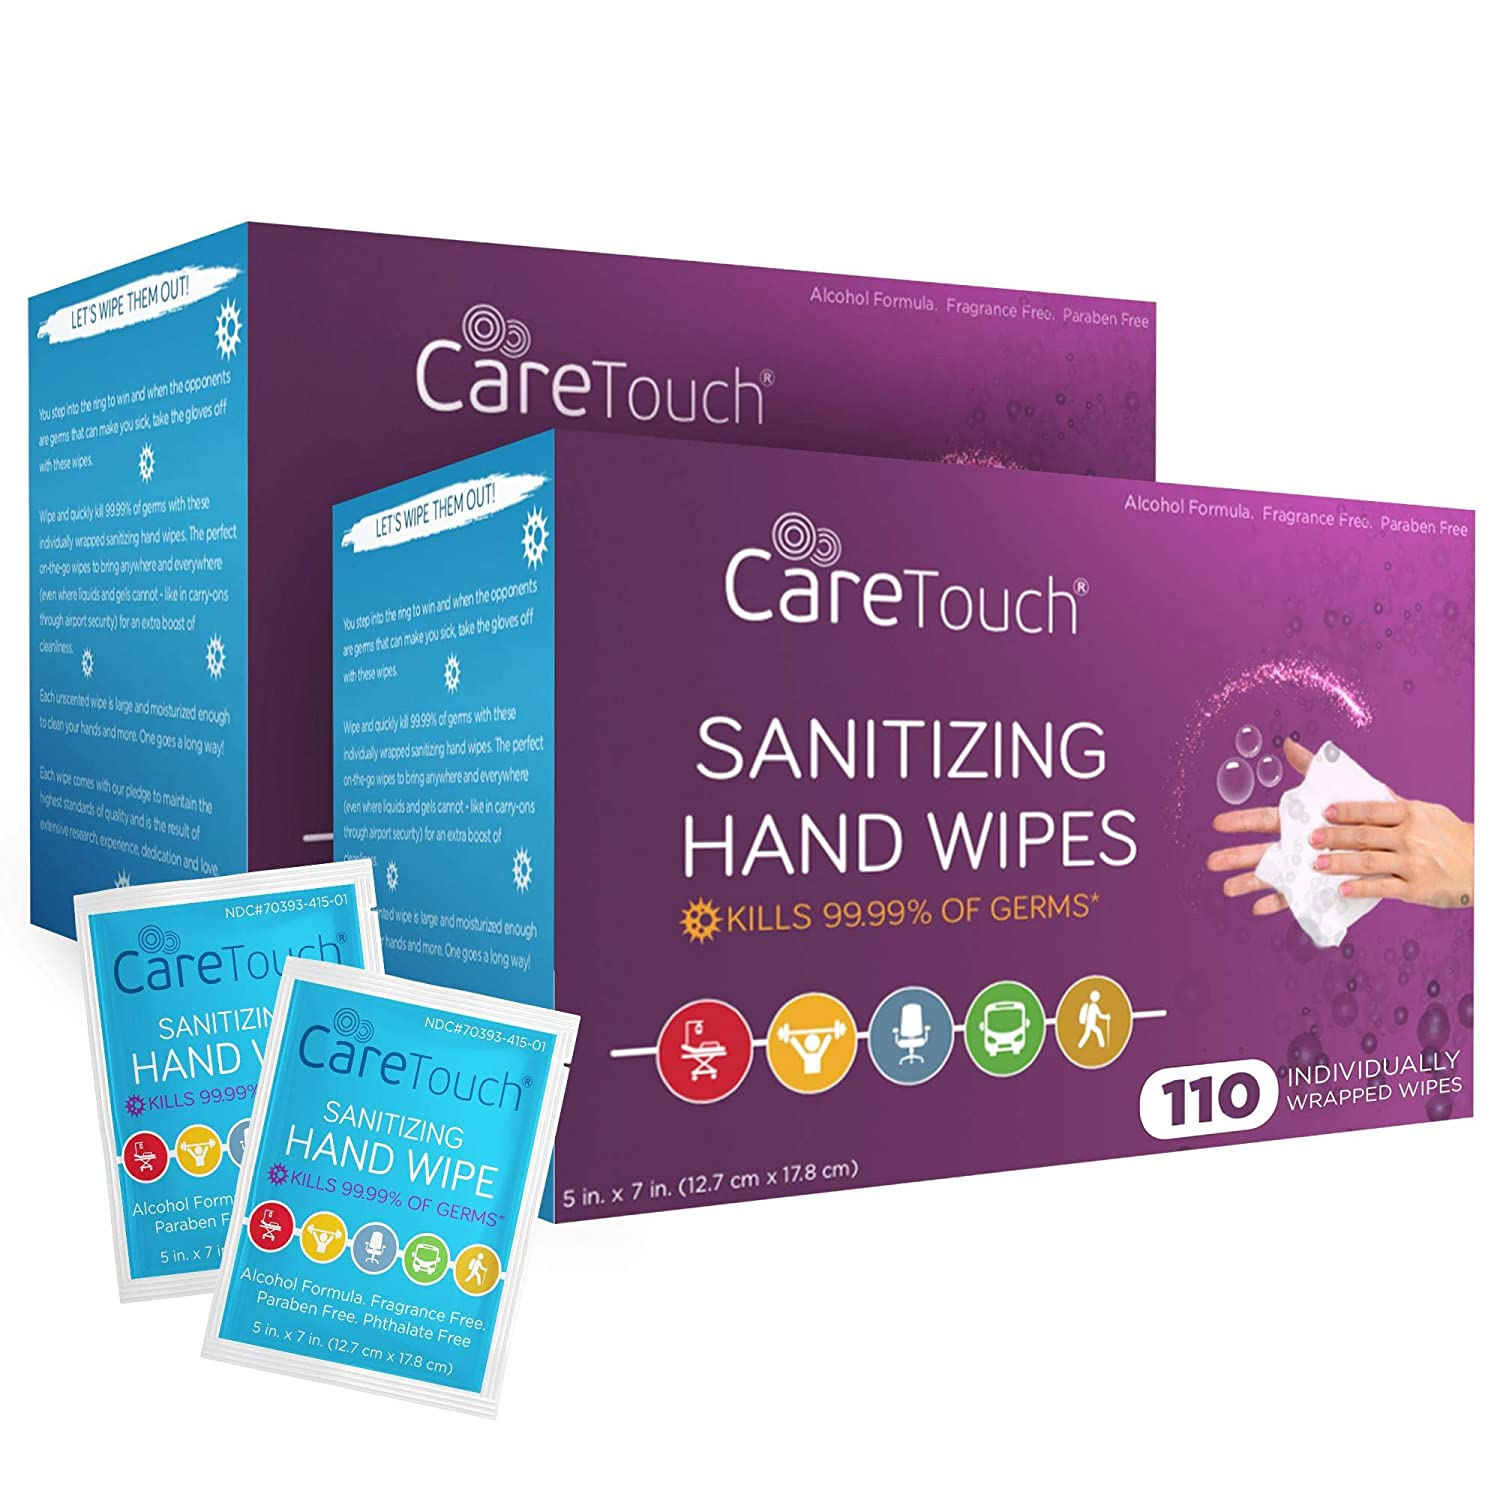 Care Touch Hand Sanitizer Wipes – 220 Individually Wrapped Packets (Box of 2, 110 Wipes Each)